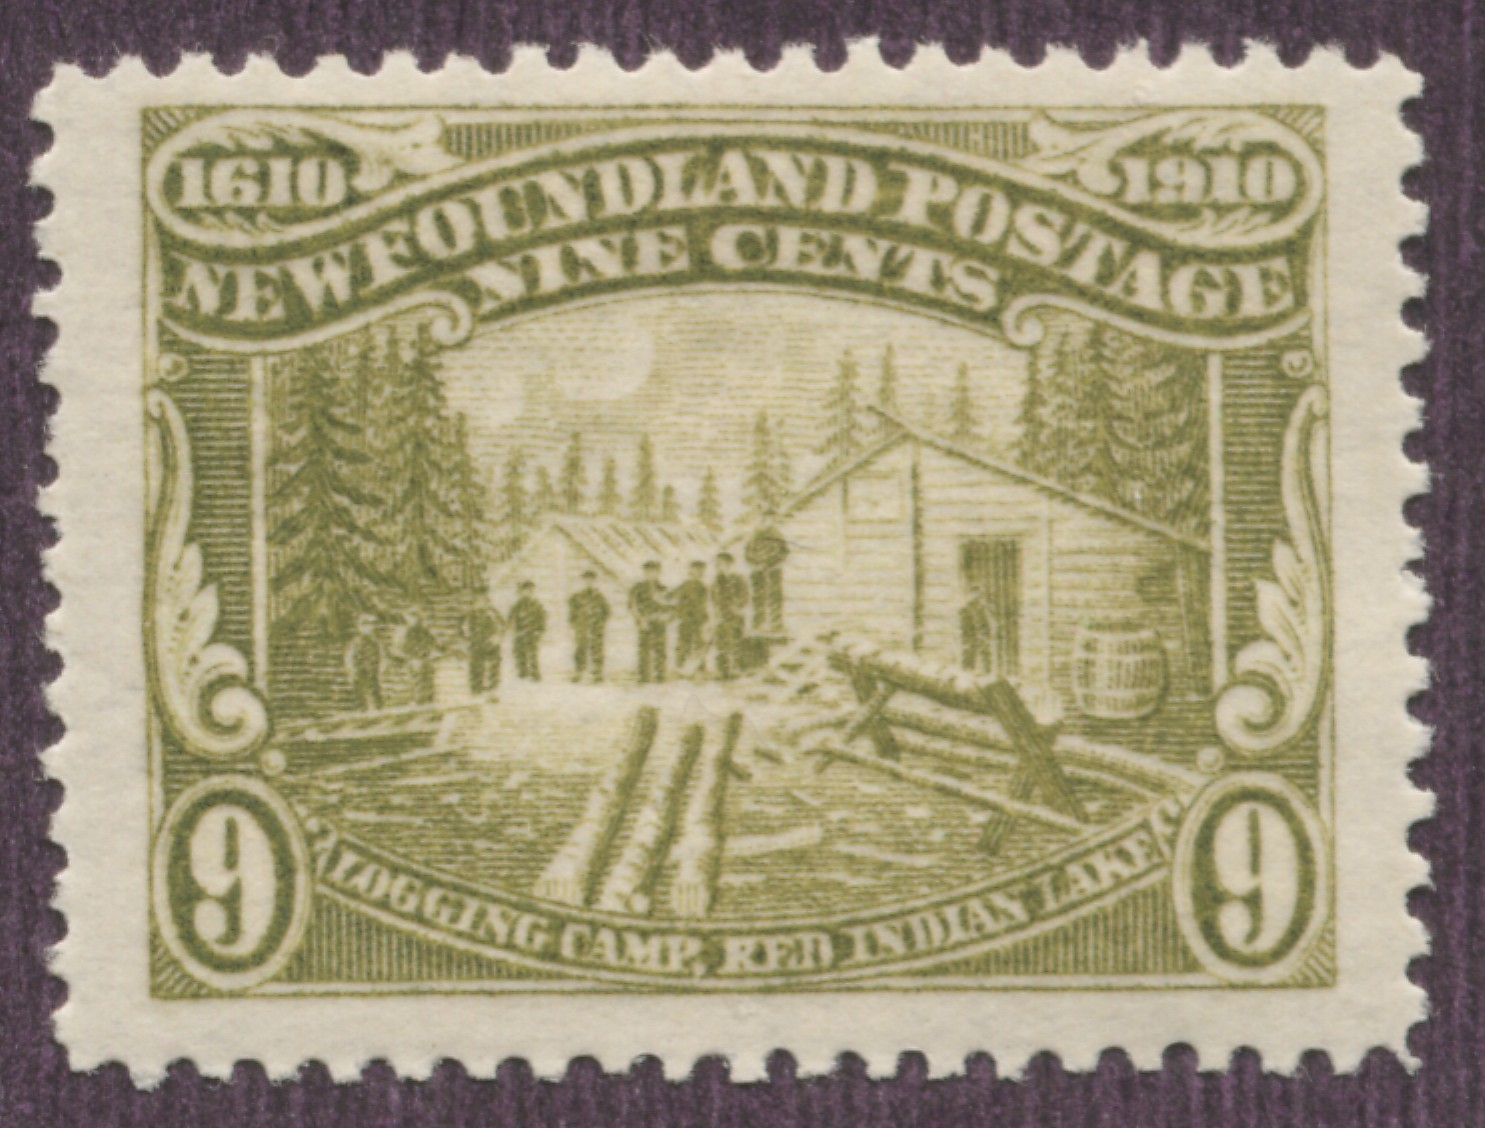 Value Old Postage Stamps